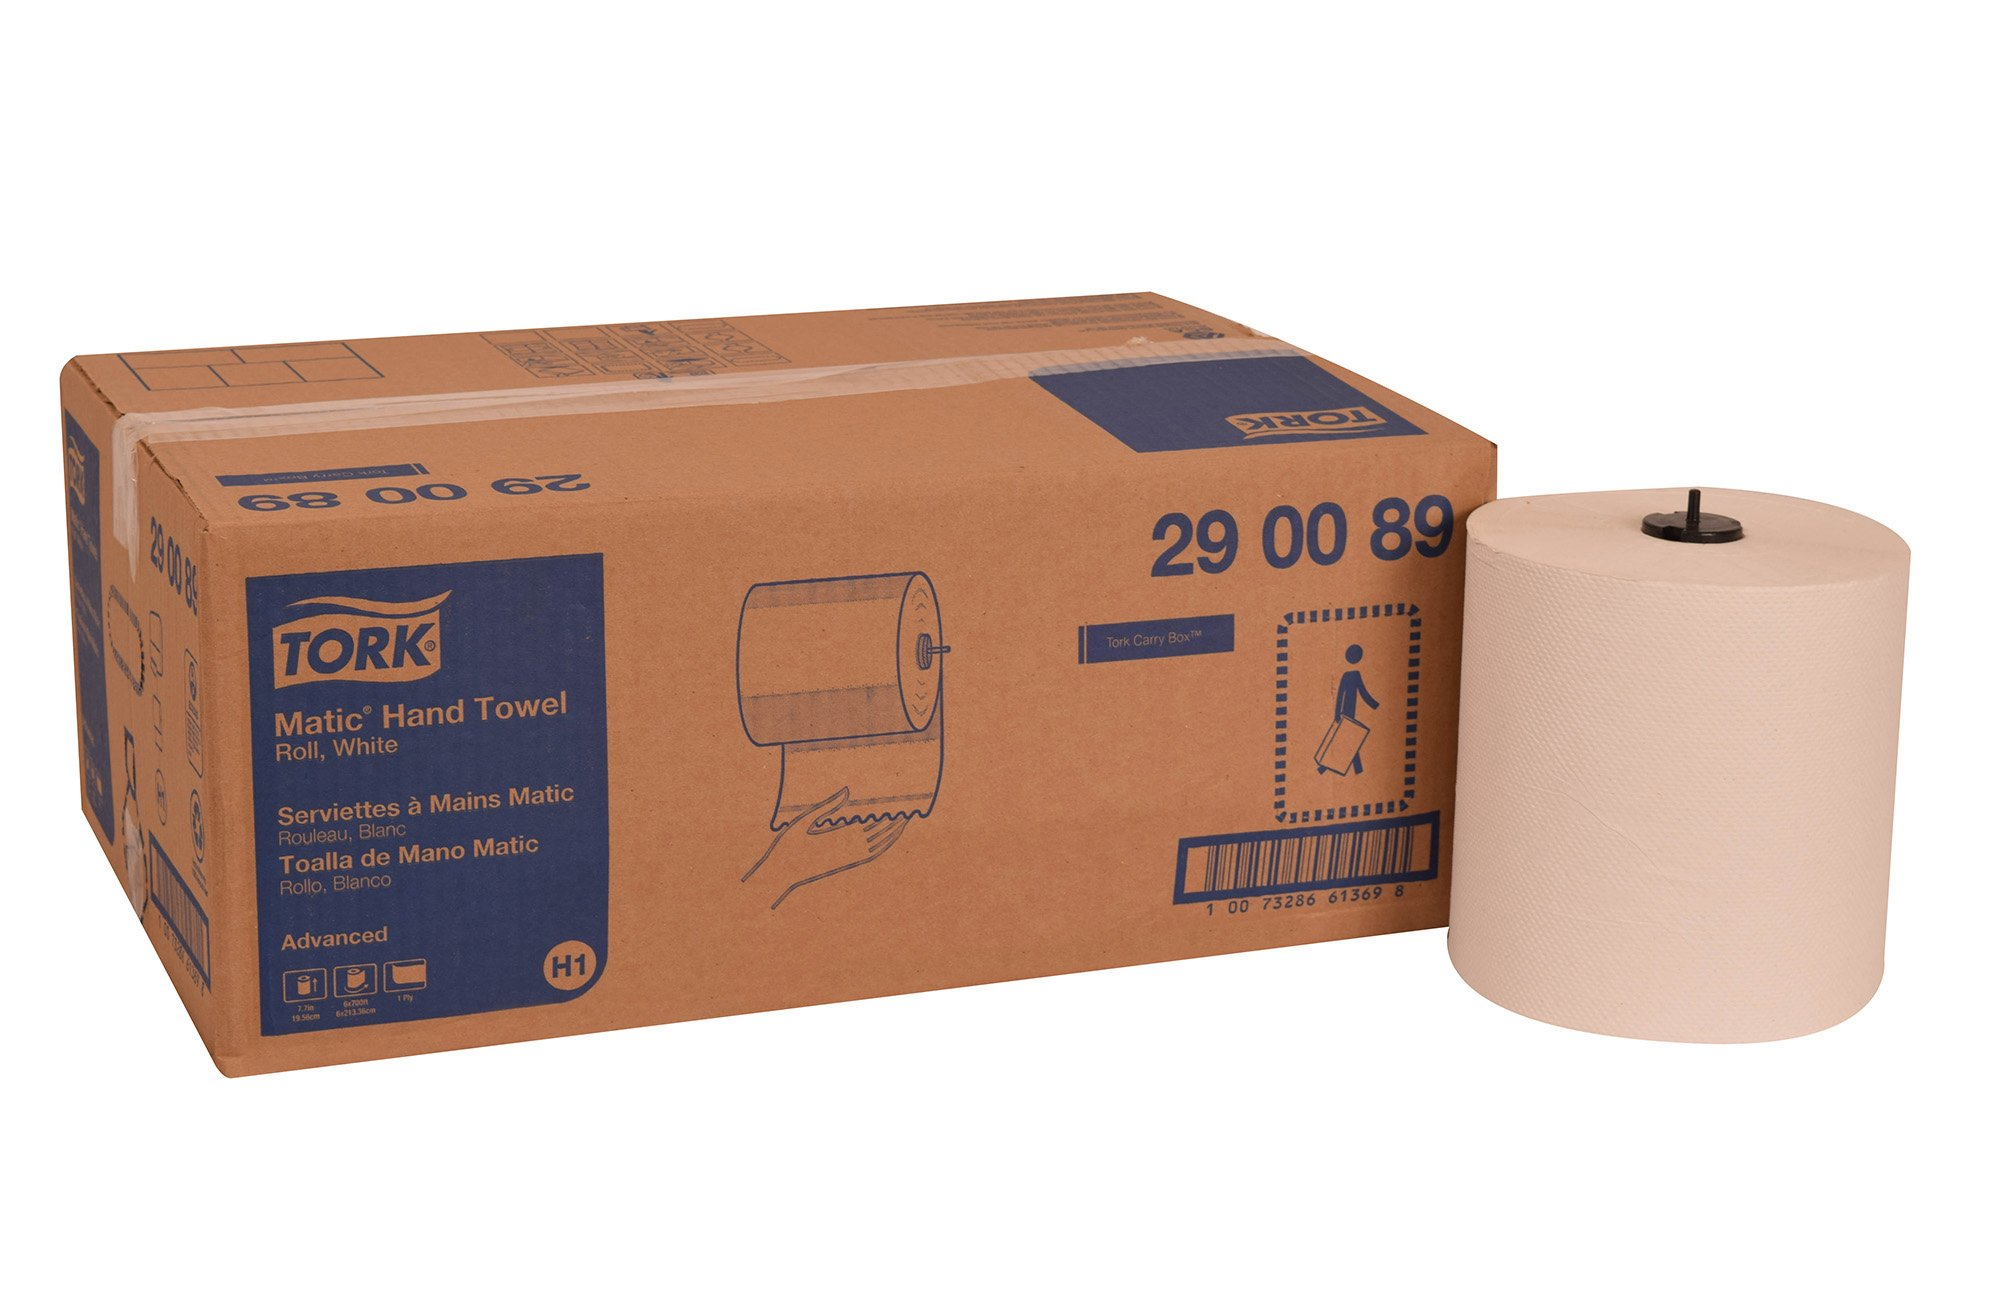 Tork 290089 Advanced Matic Paper Hand Towel Roll, 1-Ply, 7.7